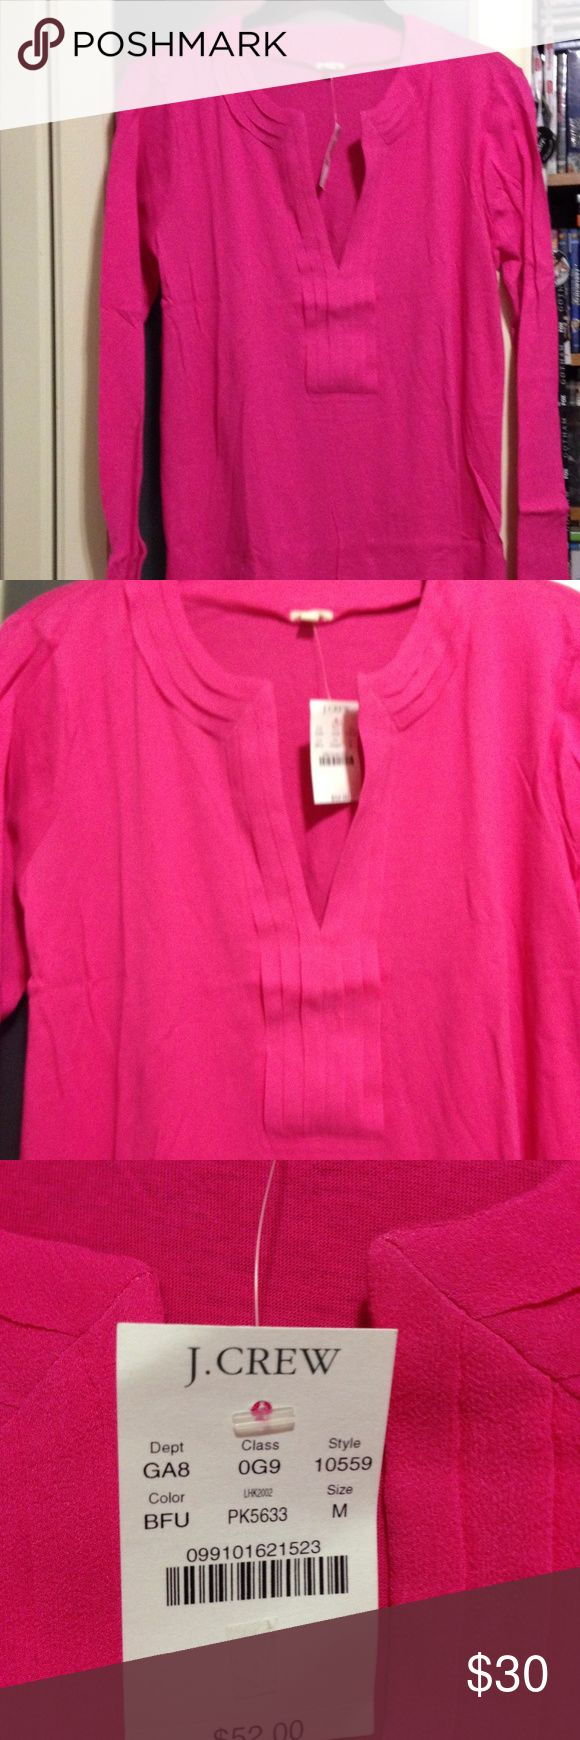 NWT J.Crew Hot Pink Long Sleeve Top Brand New J.Crew Hot Pink Long Sleeve Top. Tags attached. Gorgeous color. J. Crew Tops Tees - Long Sleeve